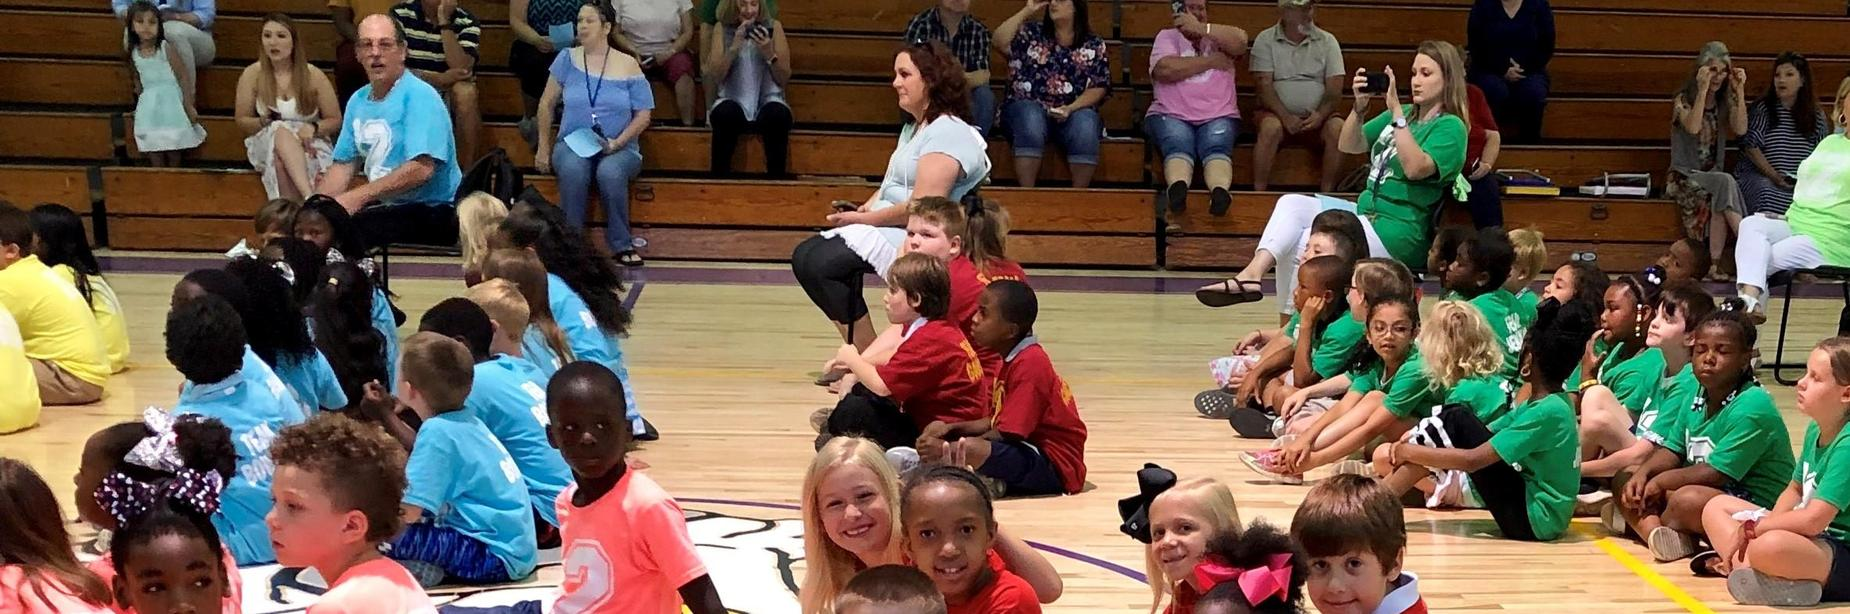 2019 2nd grade awards day classes